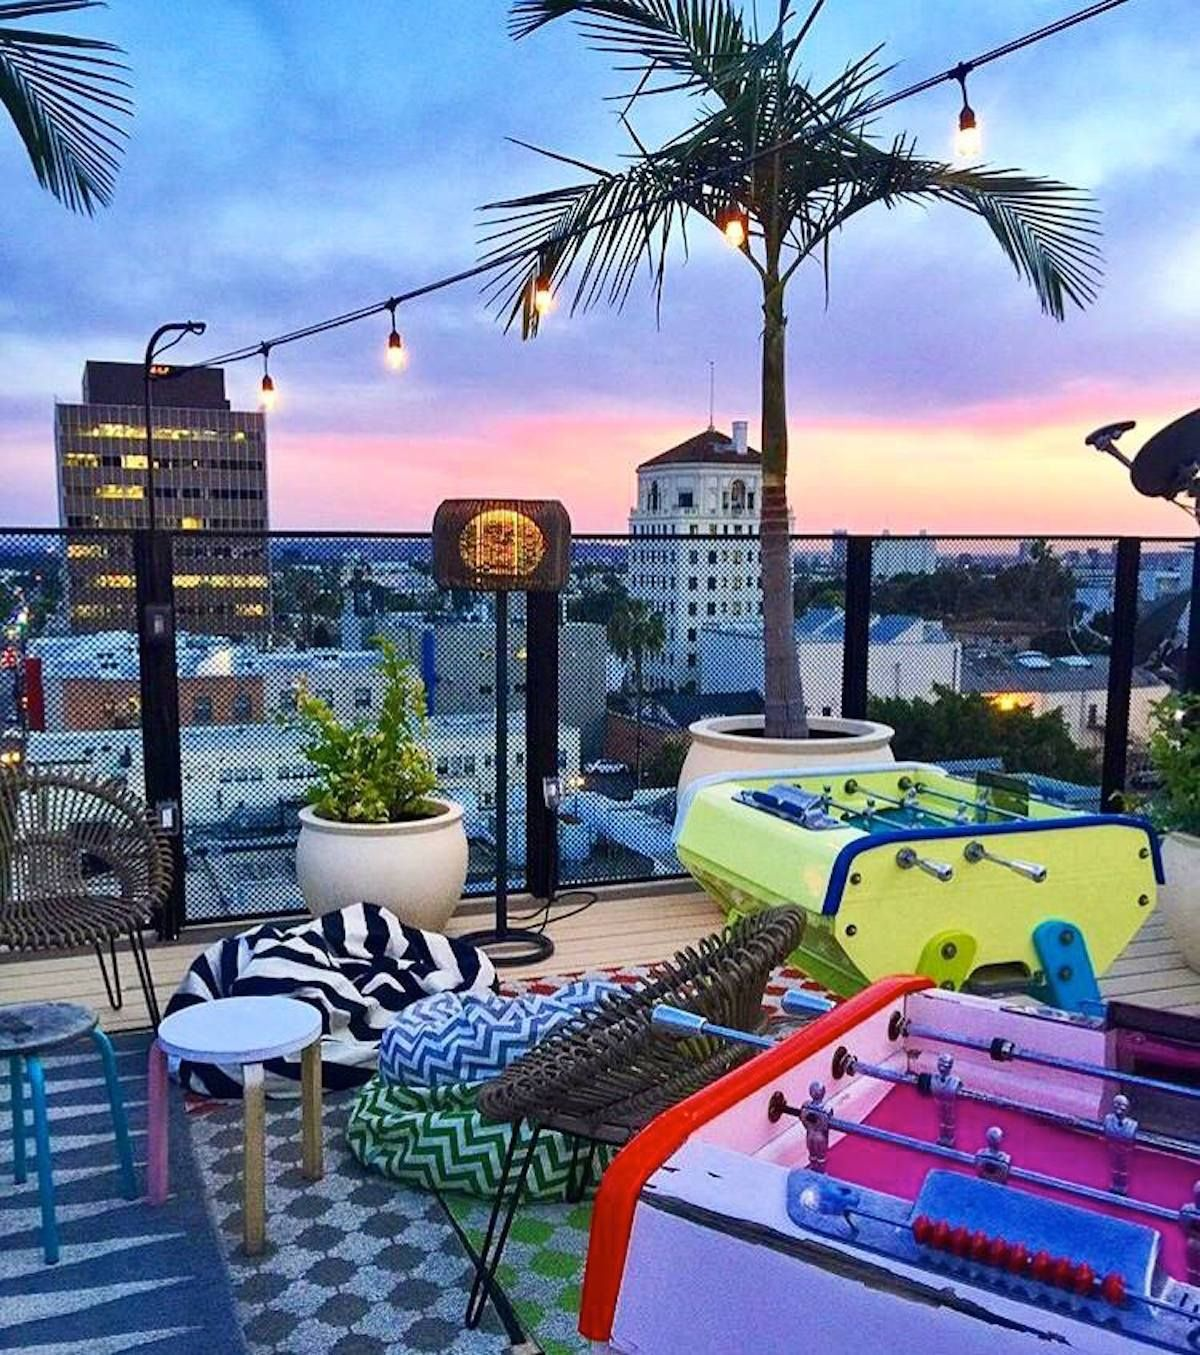 10 Coolest Rooftop Bars In America Rooftop Bar Design Best Rooftop Bars Rooftop Bar